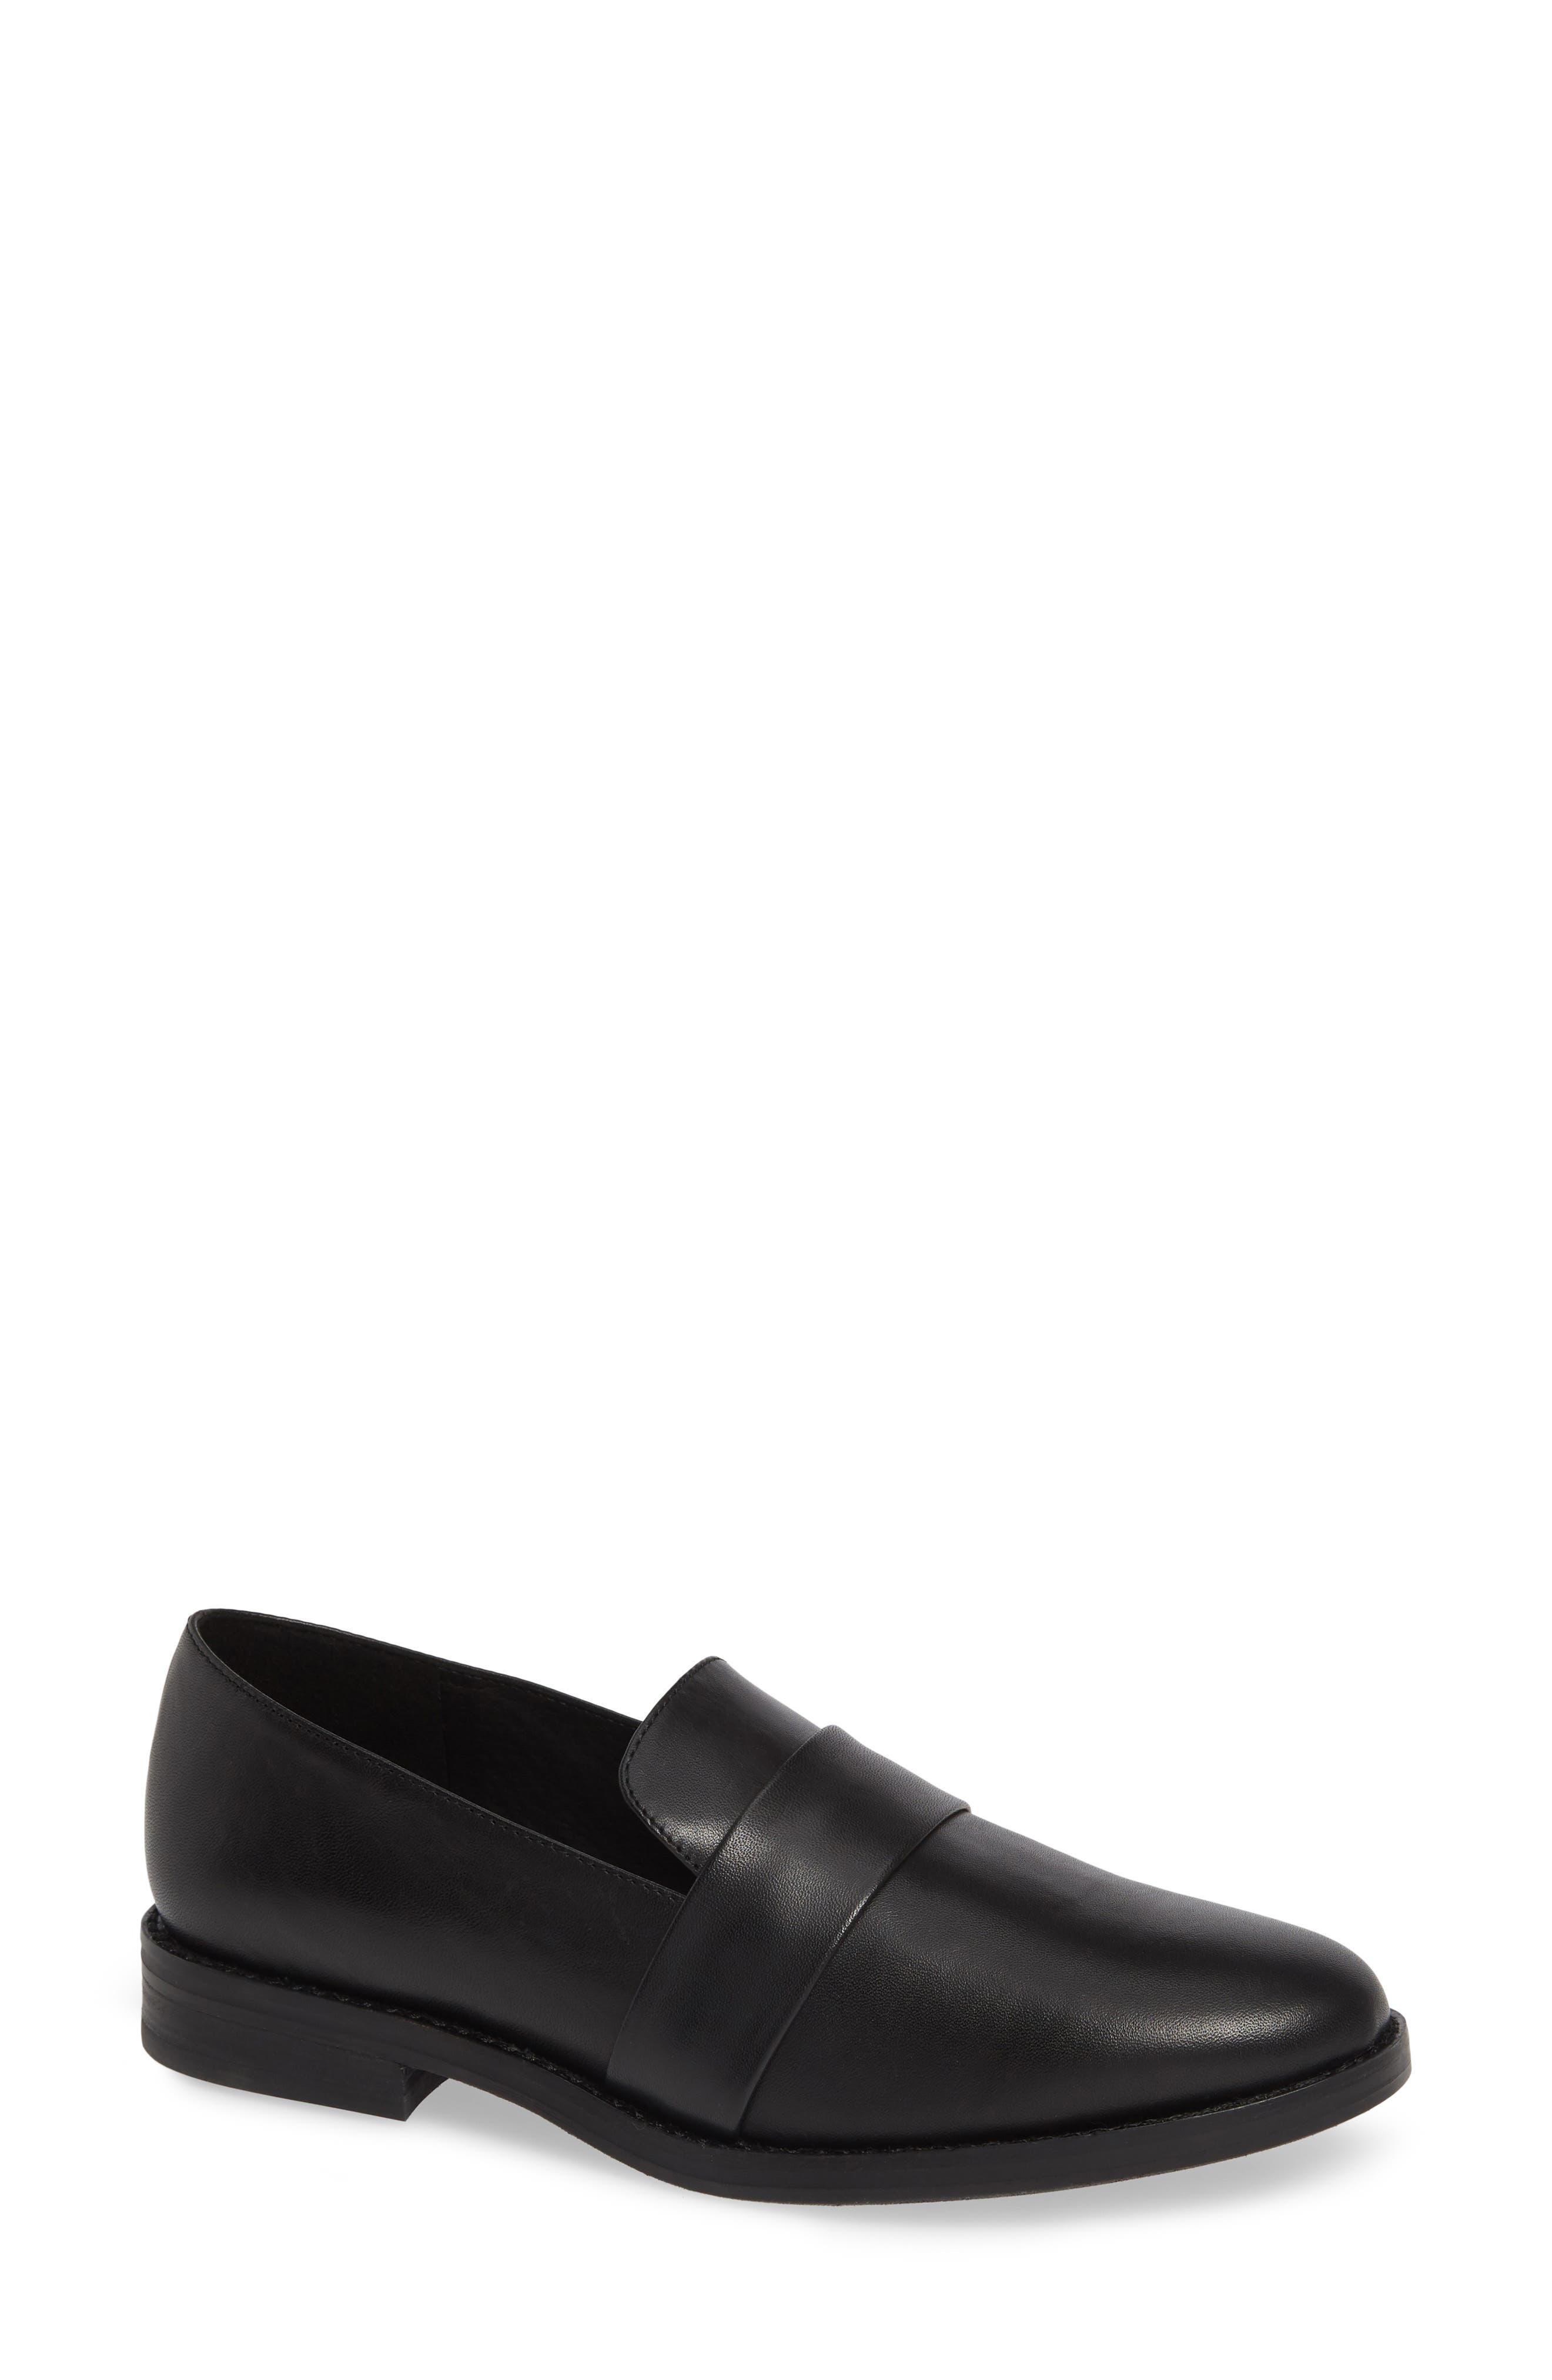 Hayes Loafer in Black Leather